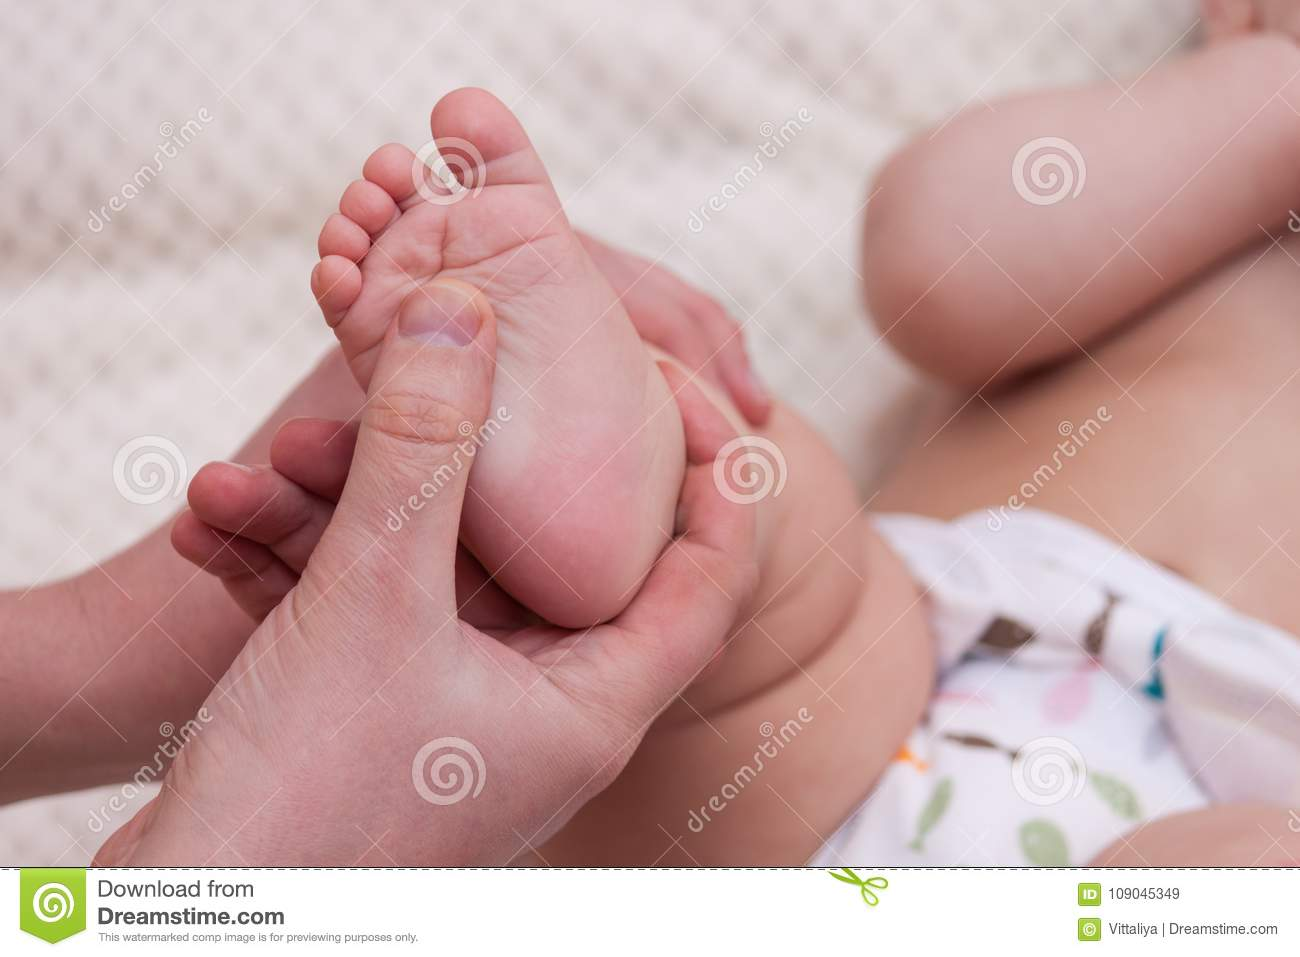 Massage for infants: how to prevent flat feet